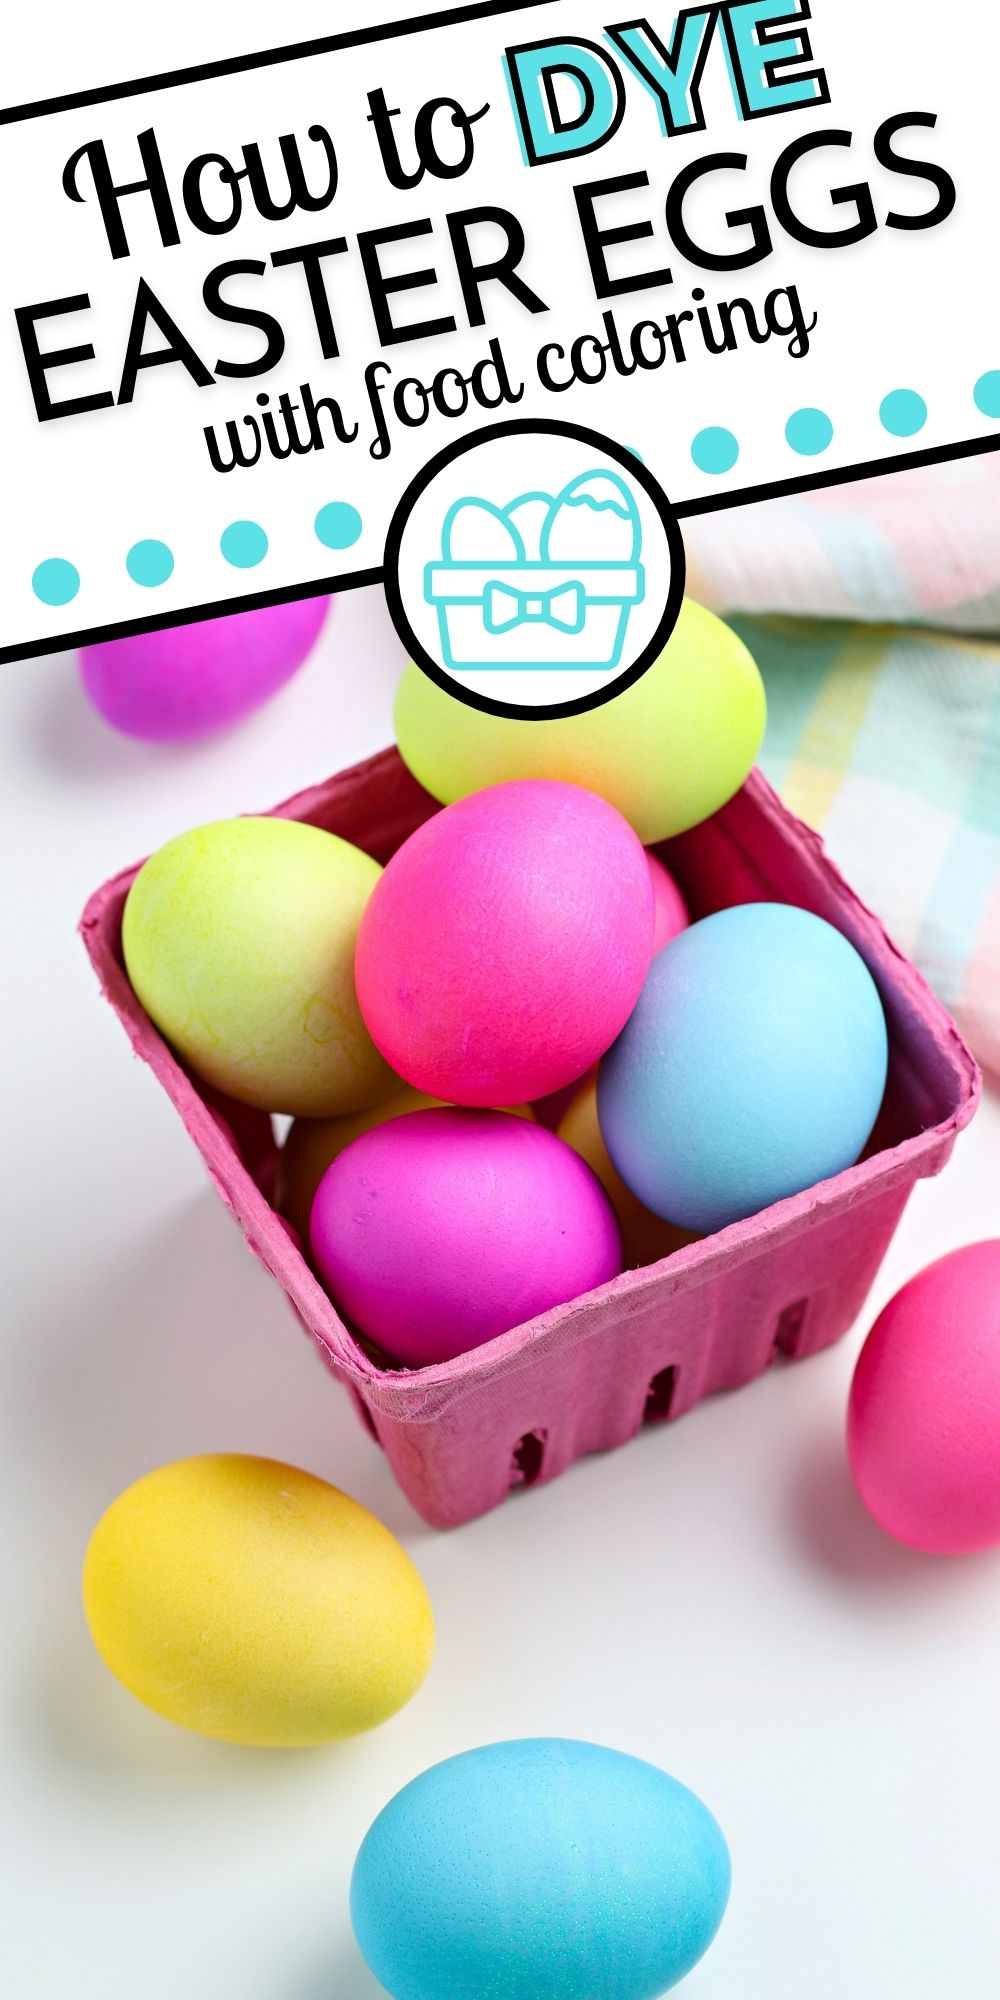 Learn How to Dye Easter Eggs with Food Coloring in this easy tutorial. Ditch the Easter eggs dyeing kit and do it from scratch instead!  via @foodfolksandfun